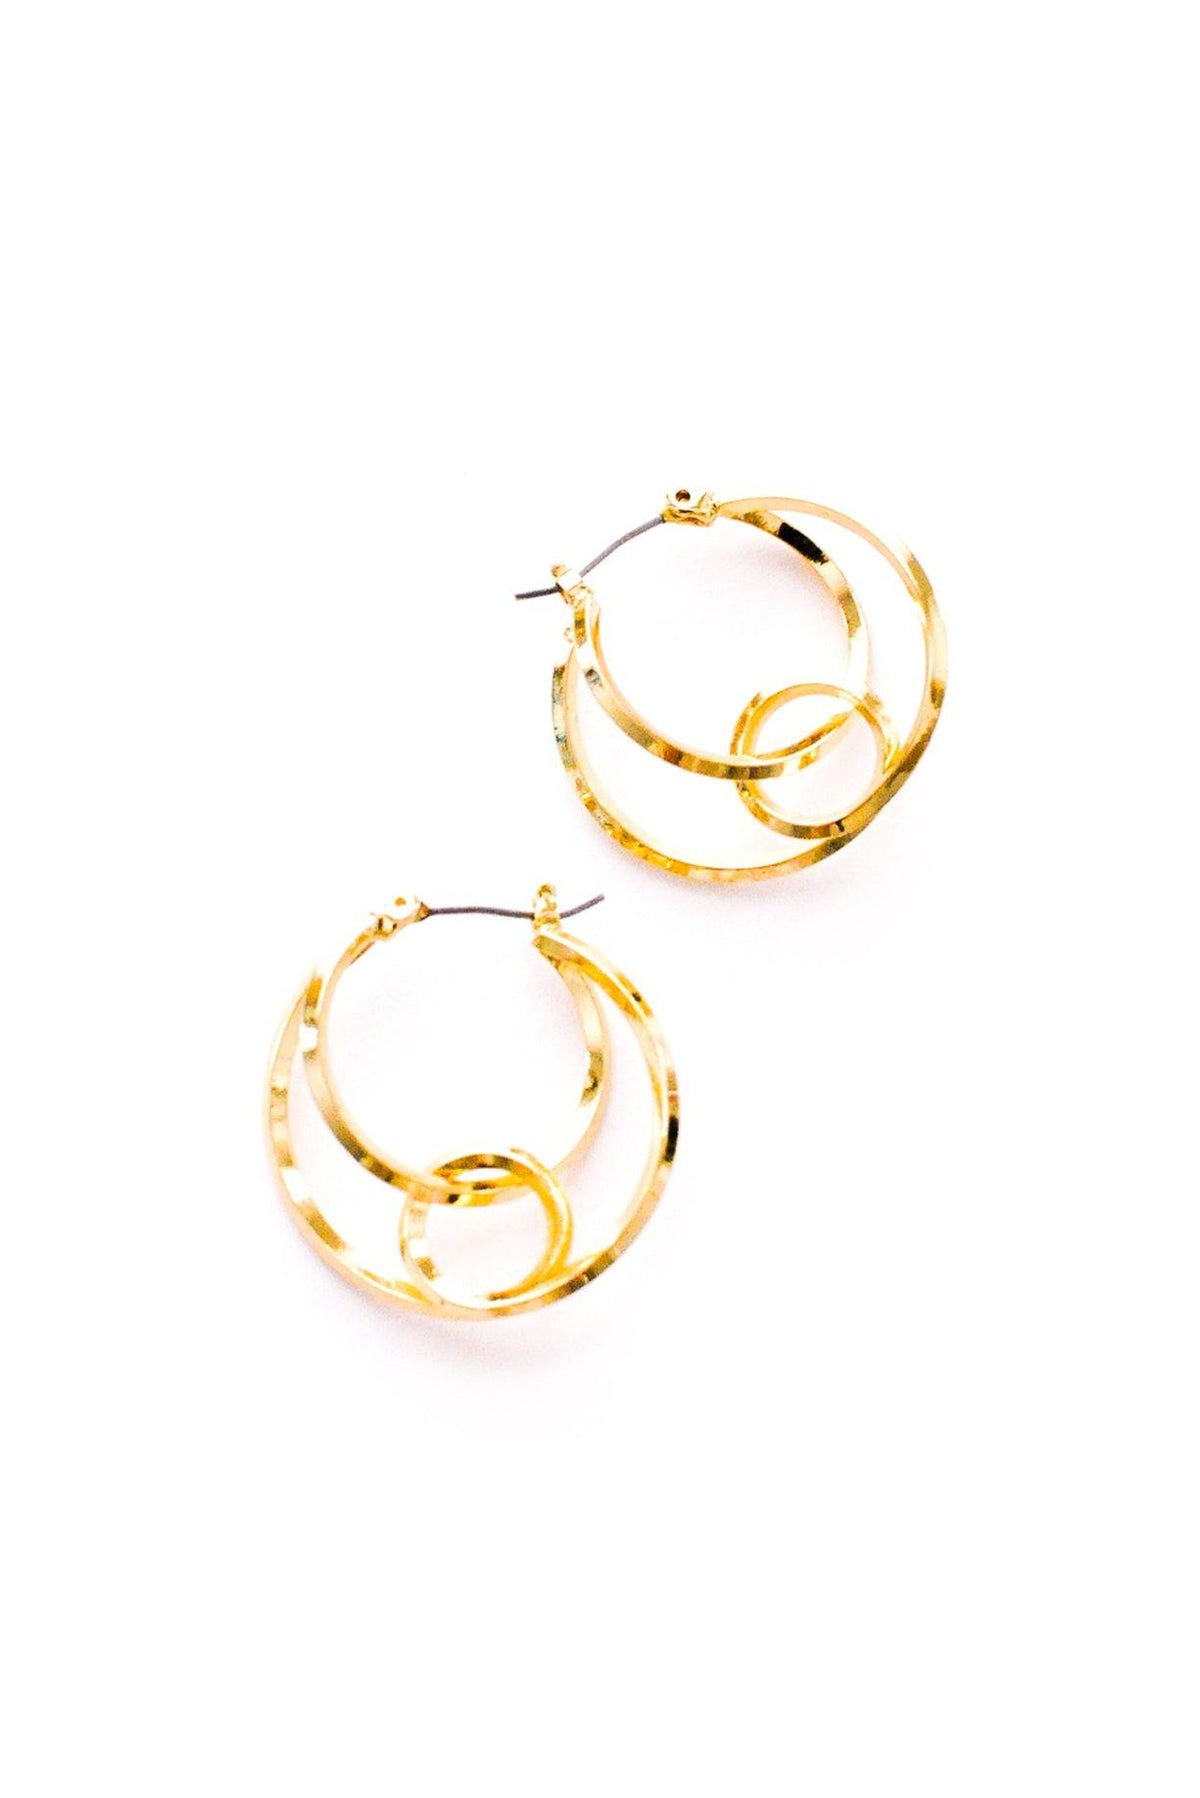 Vintage swirled hoop earrings from Sweet & Spark.